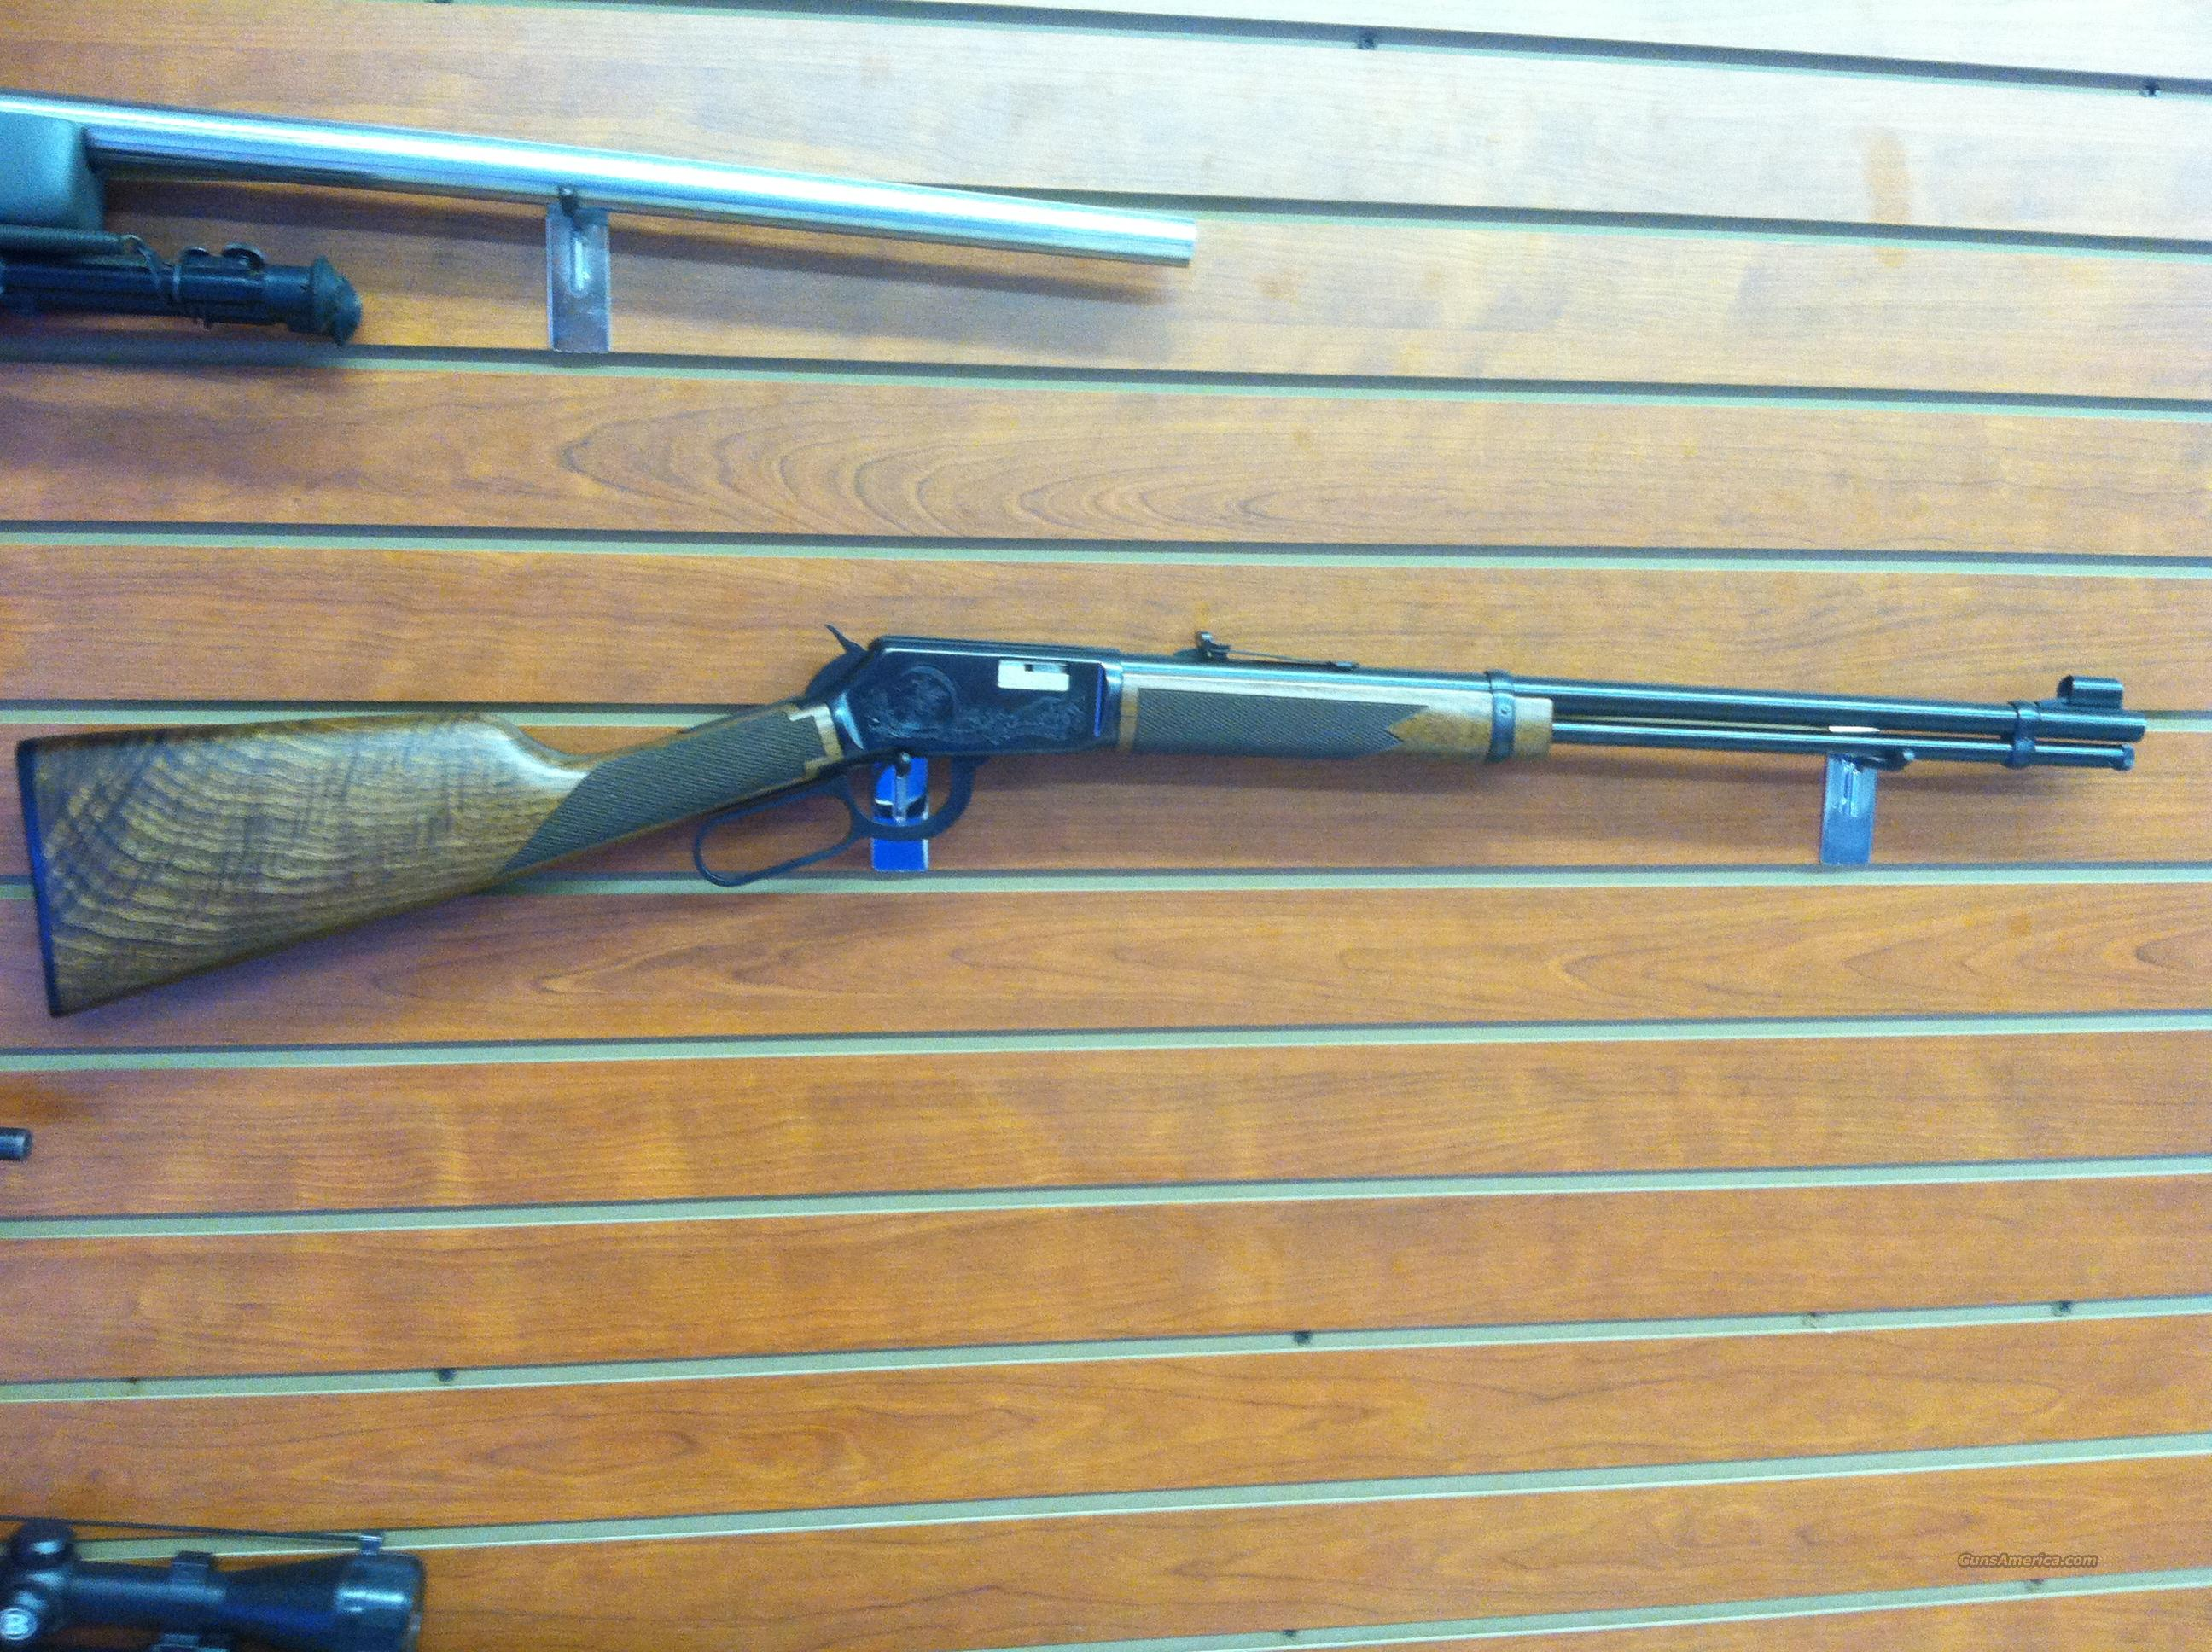 NEW 9422  25th Anniv #1968 of 2500  Lever action 22 S.L.LR  Guns > Rifles > Winchester Rifles - Modern Lever > Other Lever > Post-64